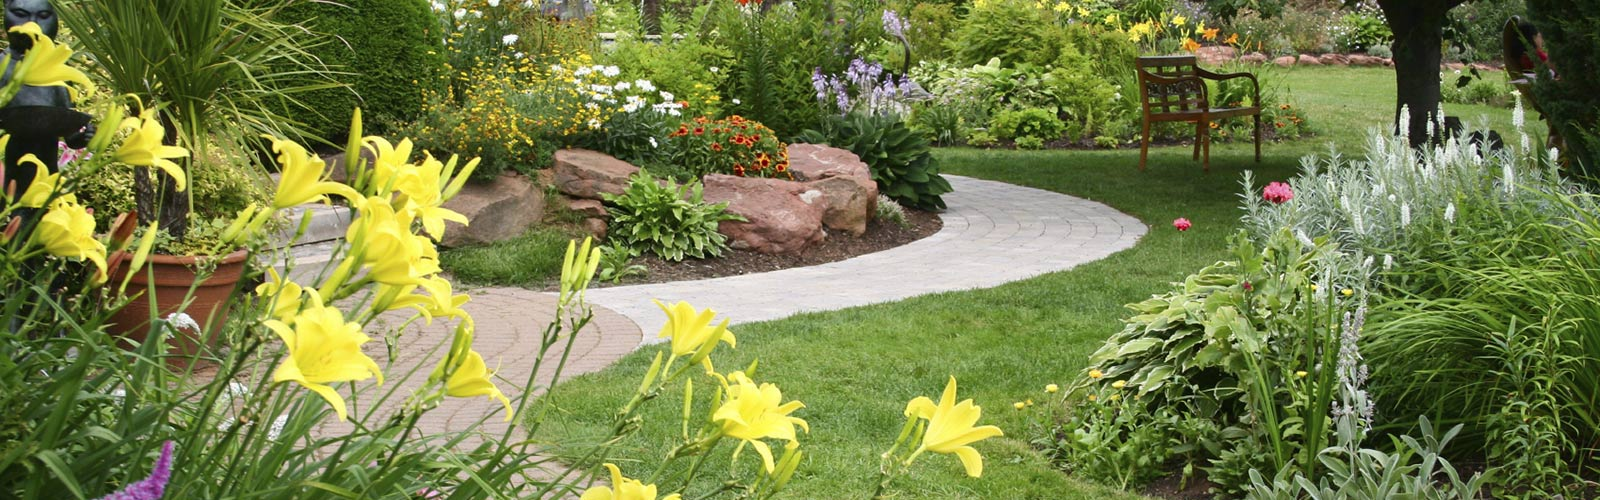 Landscaping St Louis Missouri